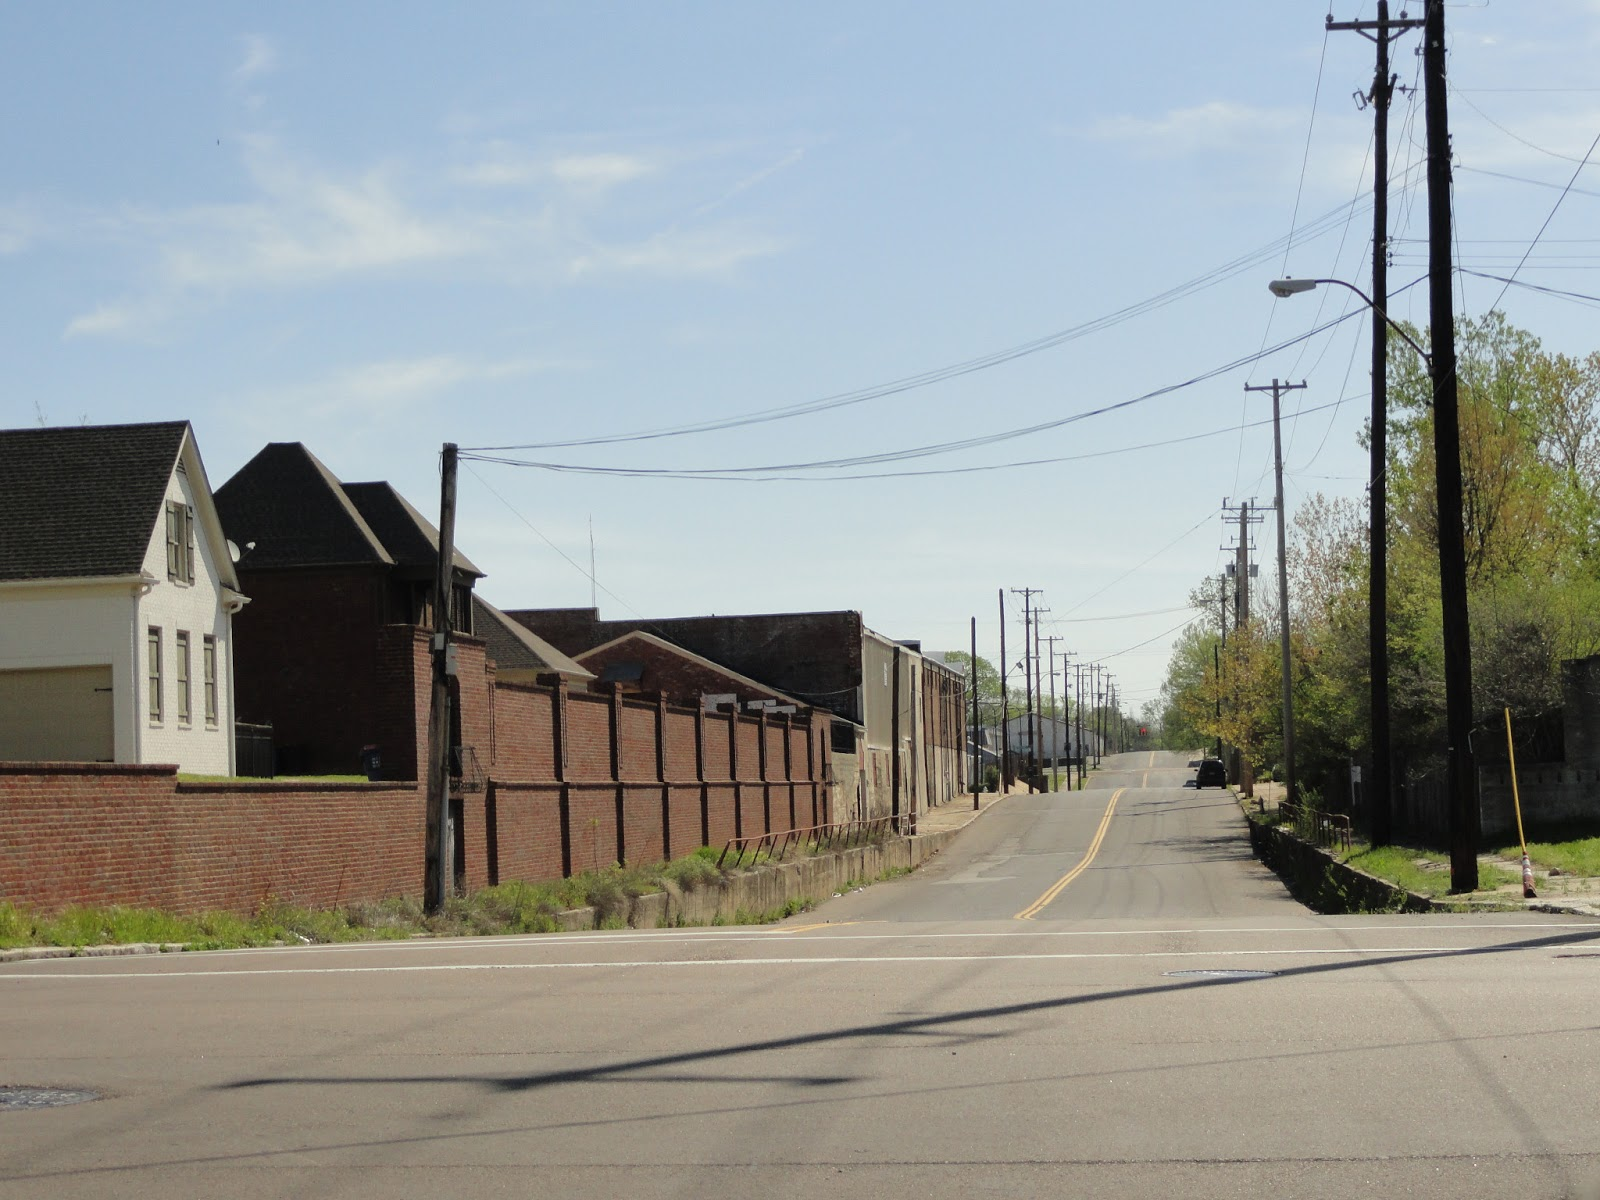 this view down east carolina looking east from main street demonstrates the fact that there were once many railroad overpasses that traversed this street